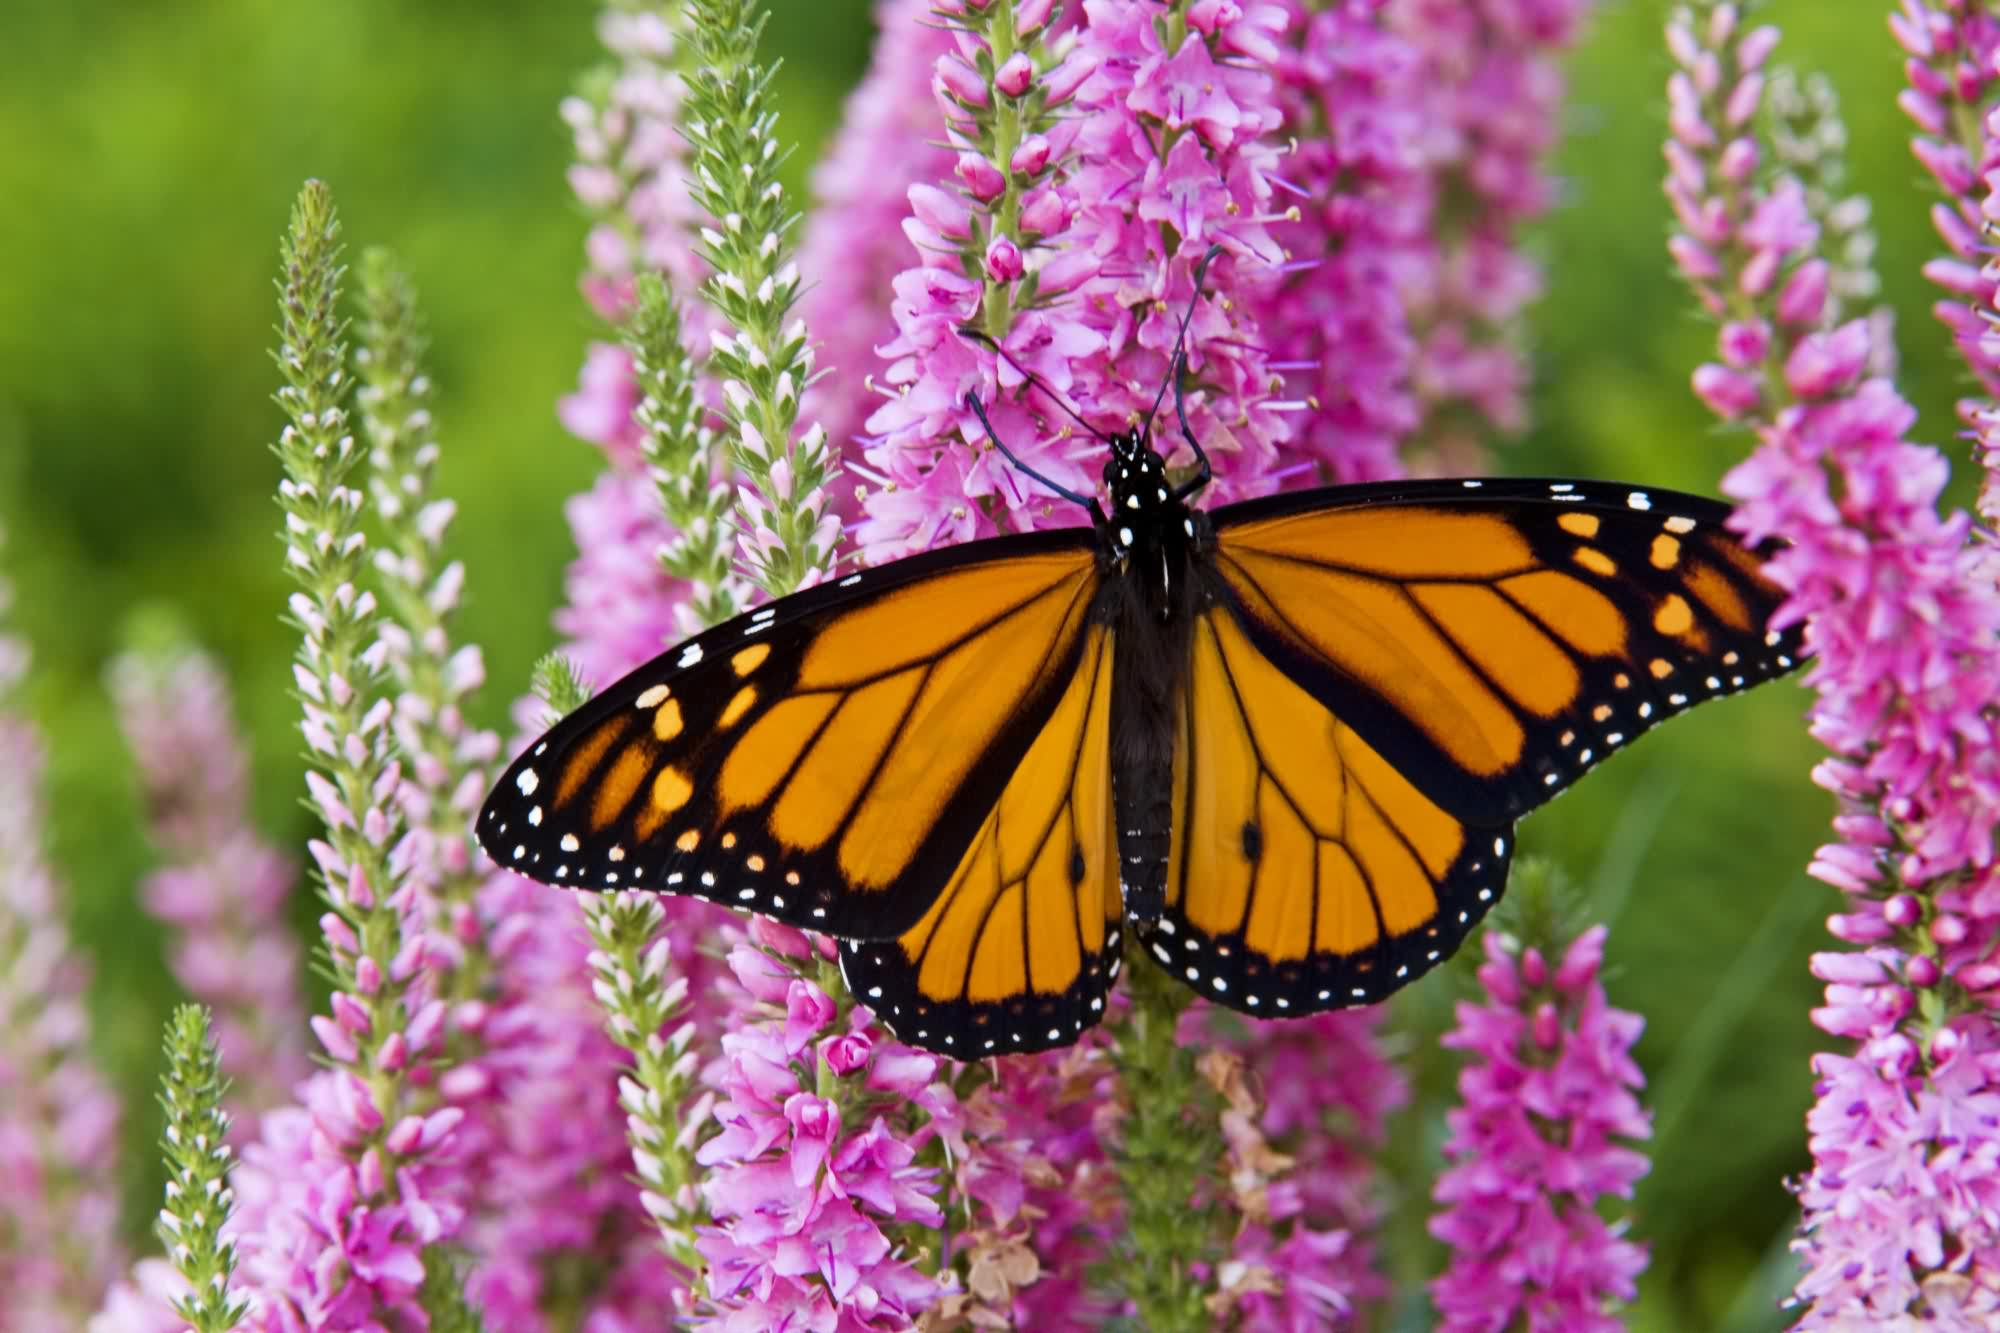 Monarch Butterfly Wallpapers wallpaper wallpaper hd background 2000x1333